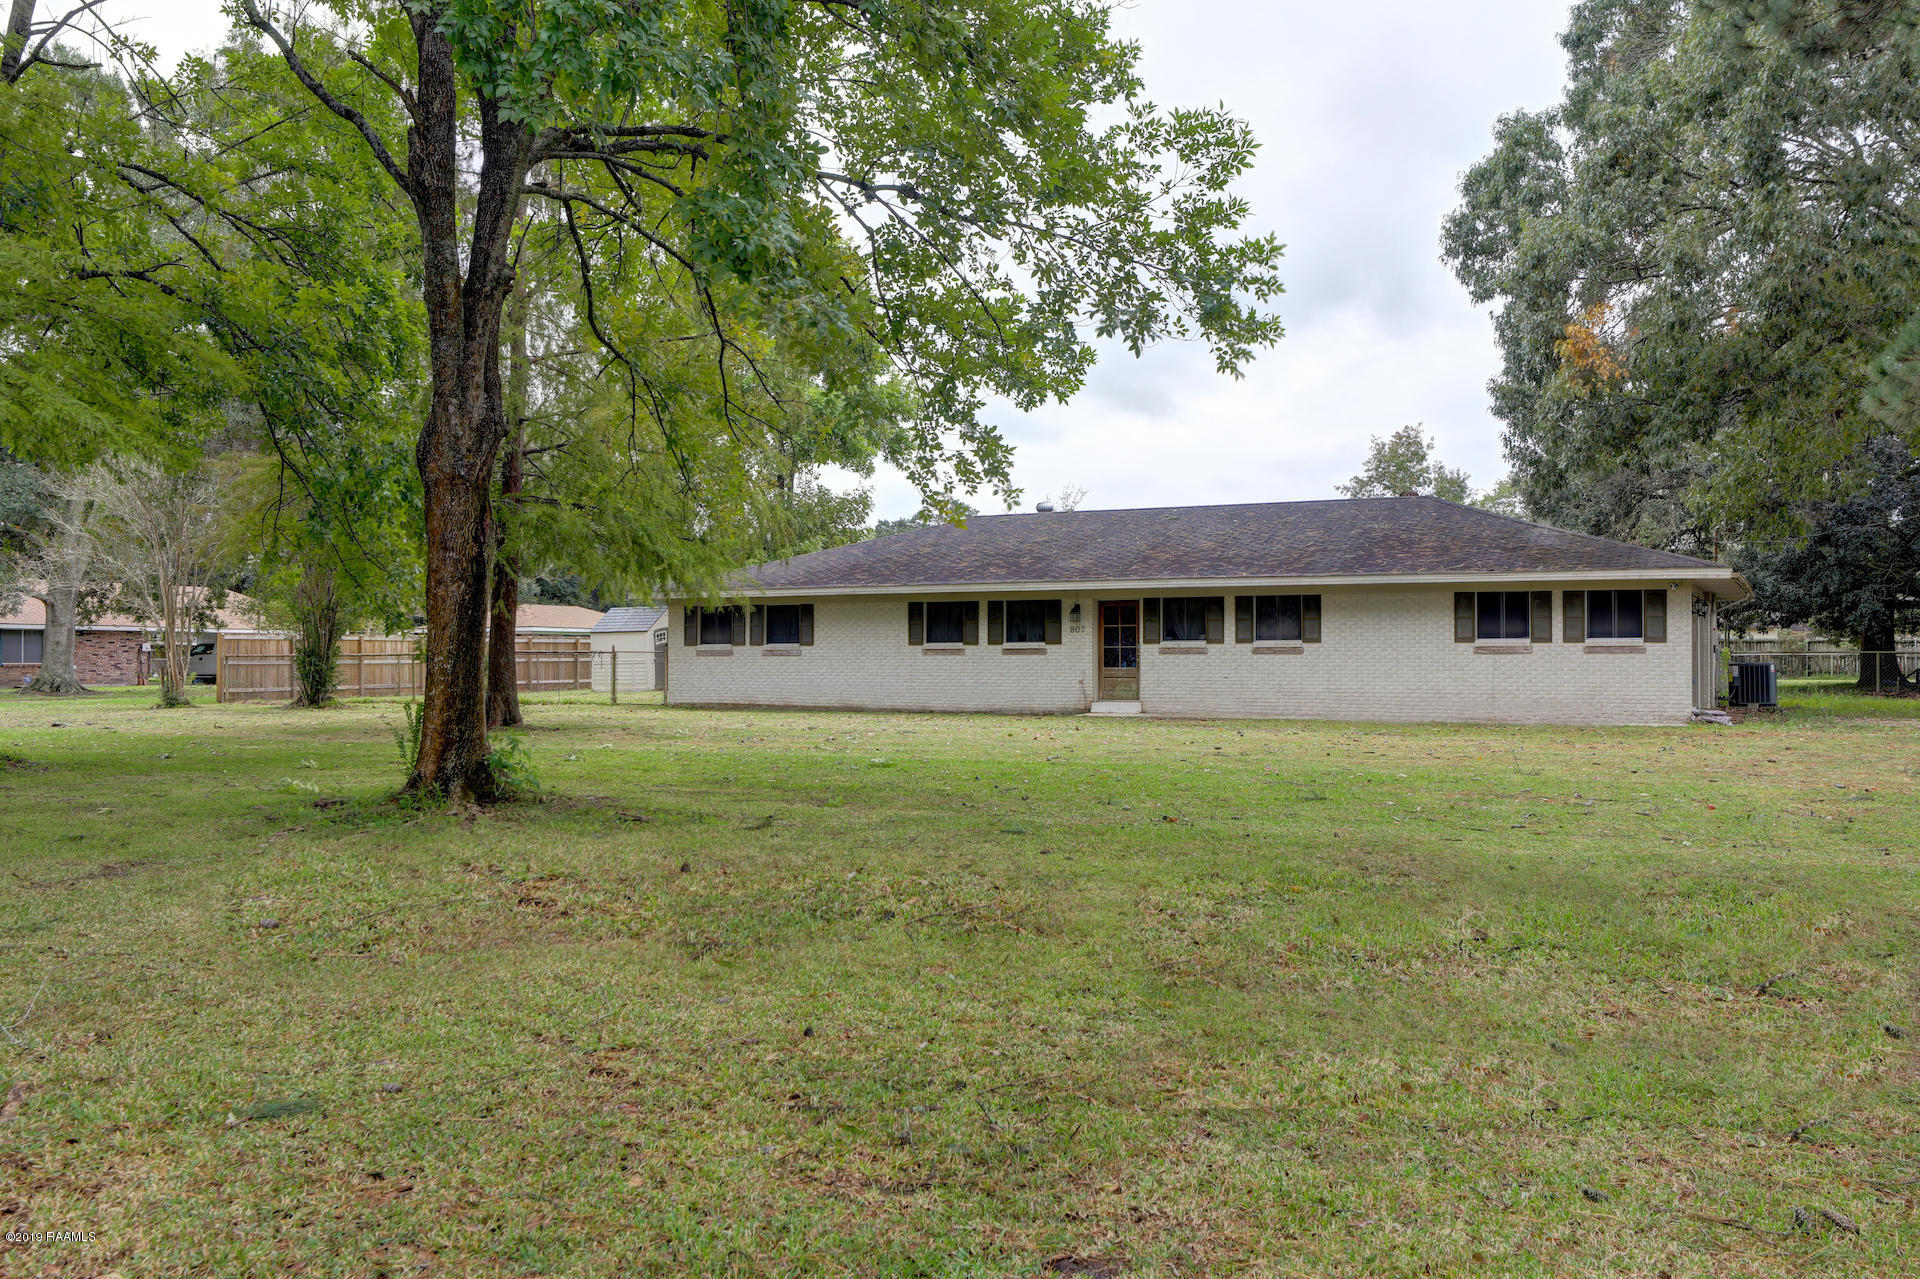 807 La Neuville Road, Lafayette, LA 70508 Photo #1